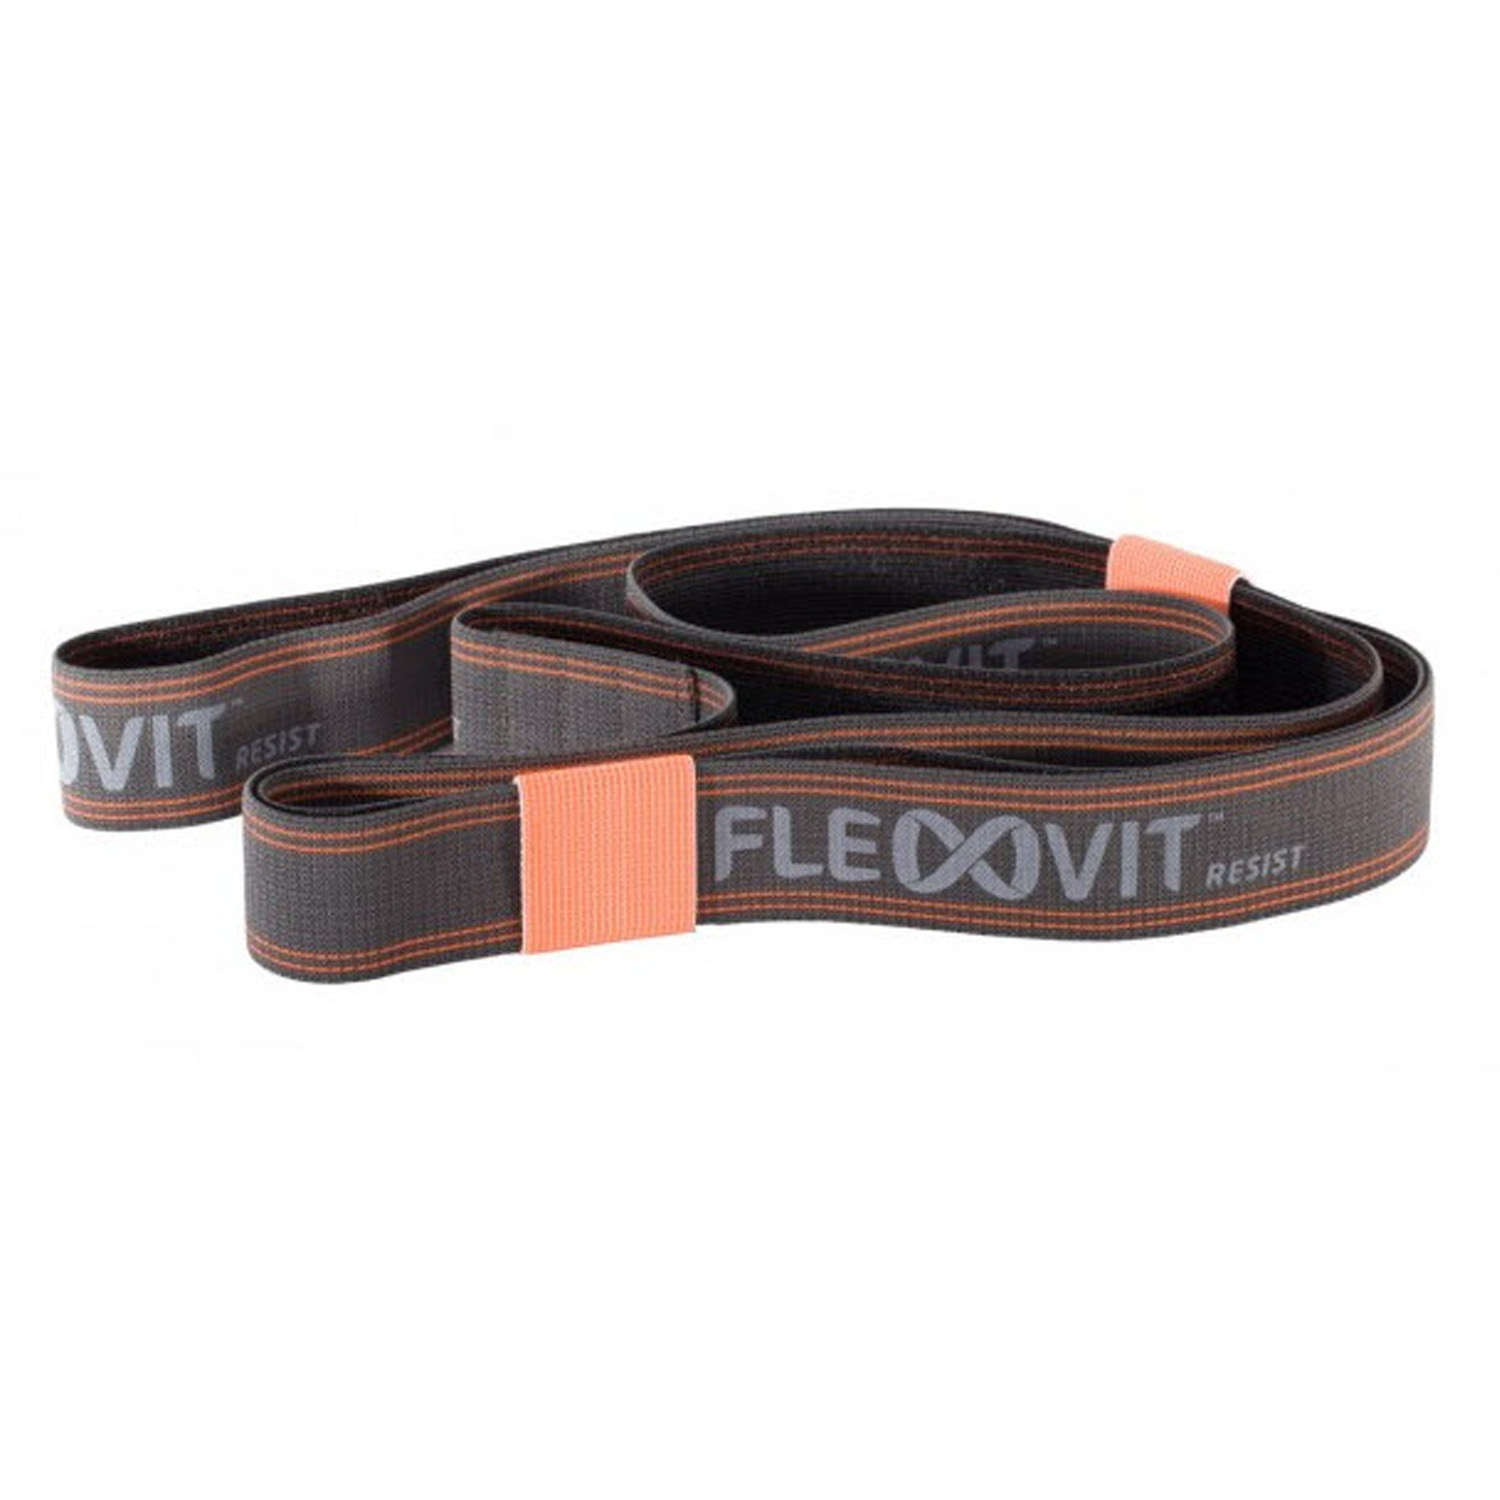 "Widerstandsband ""Flexvit"""